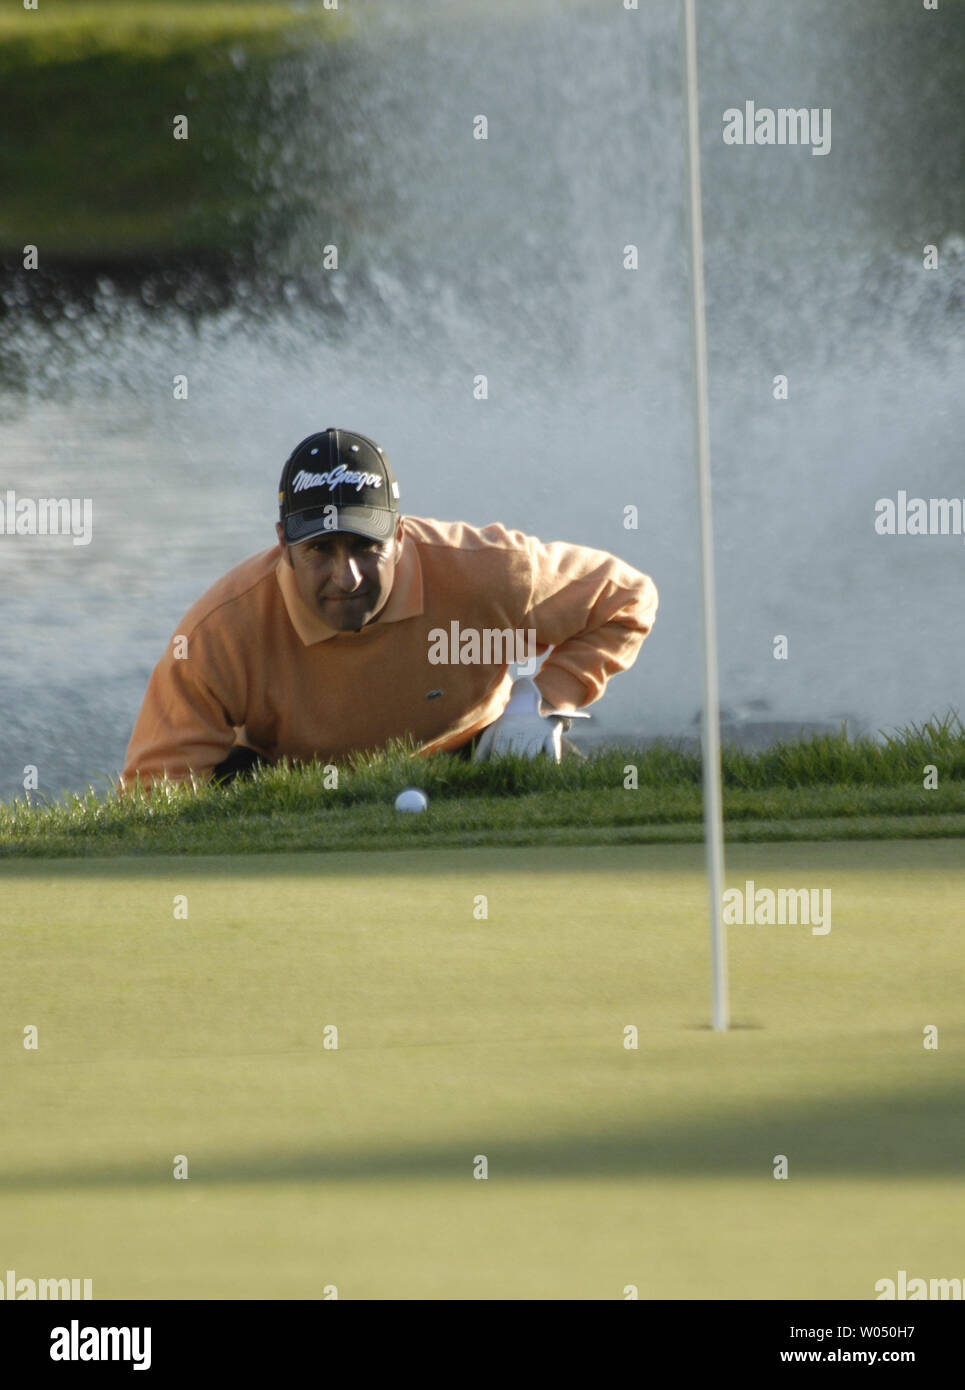 Jose Maria Olazabal of Spain. Lines up his ball on the 18th hole during his playoff loss to Tiger Woods at the Buick Invitational golf tournament January 29, 2006 in San Diego, California. (UPI Photo / Earl S. Cryer) - Stock Image